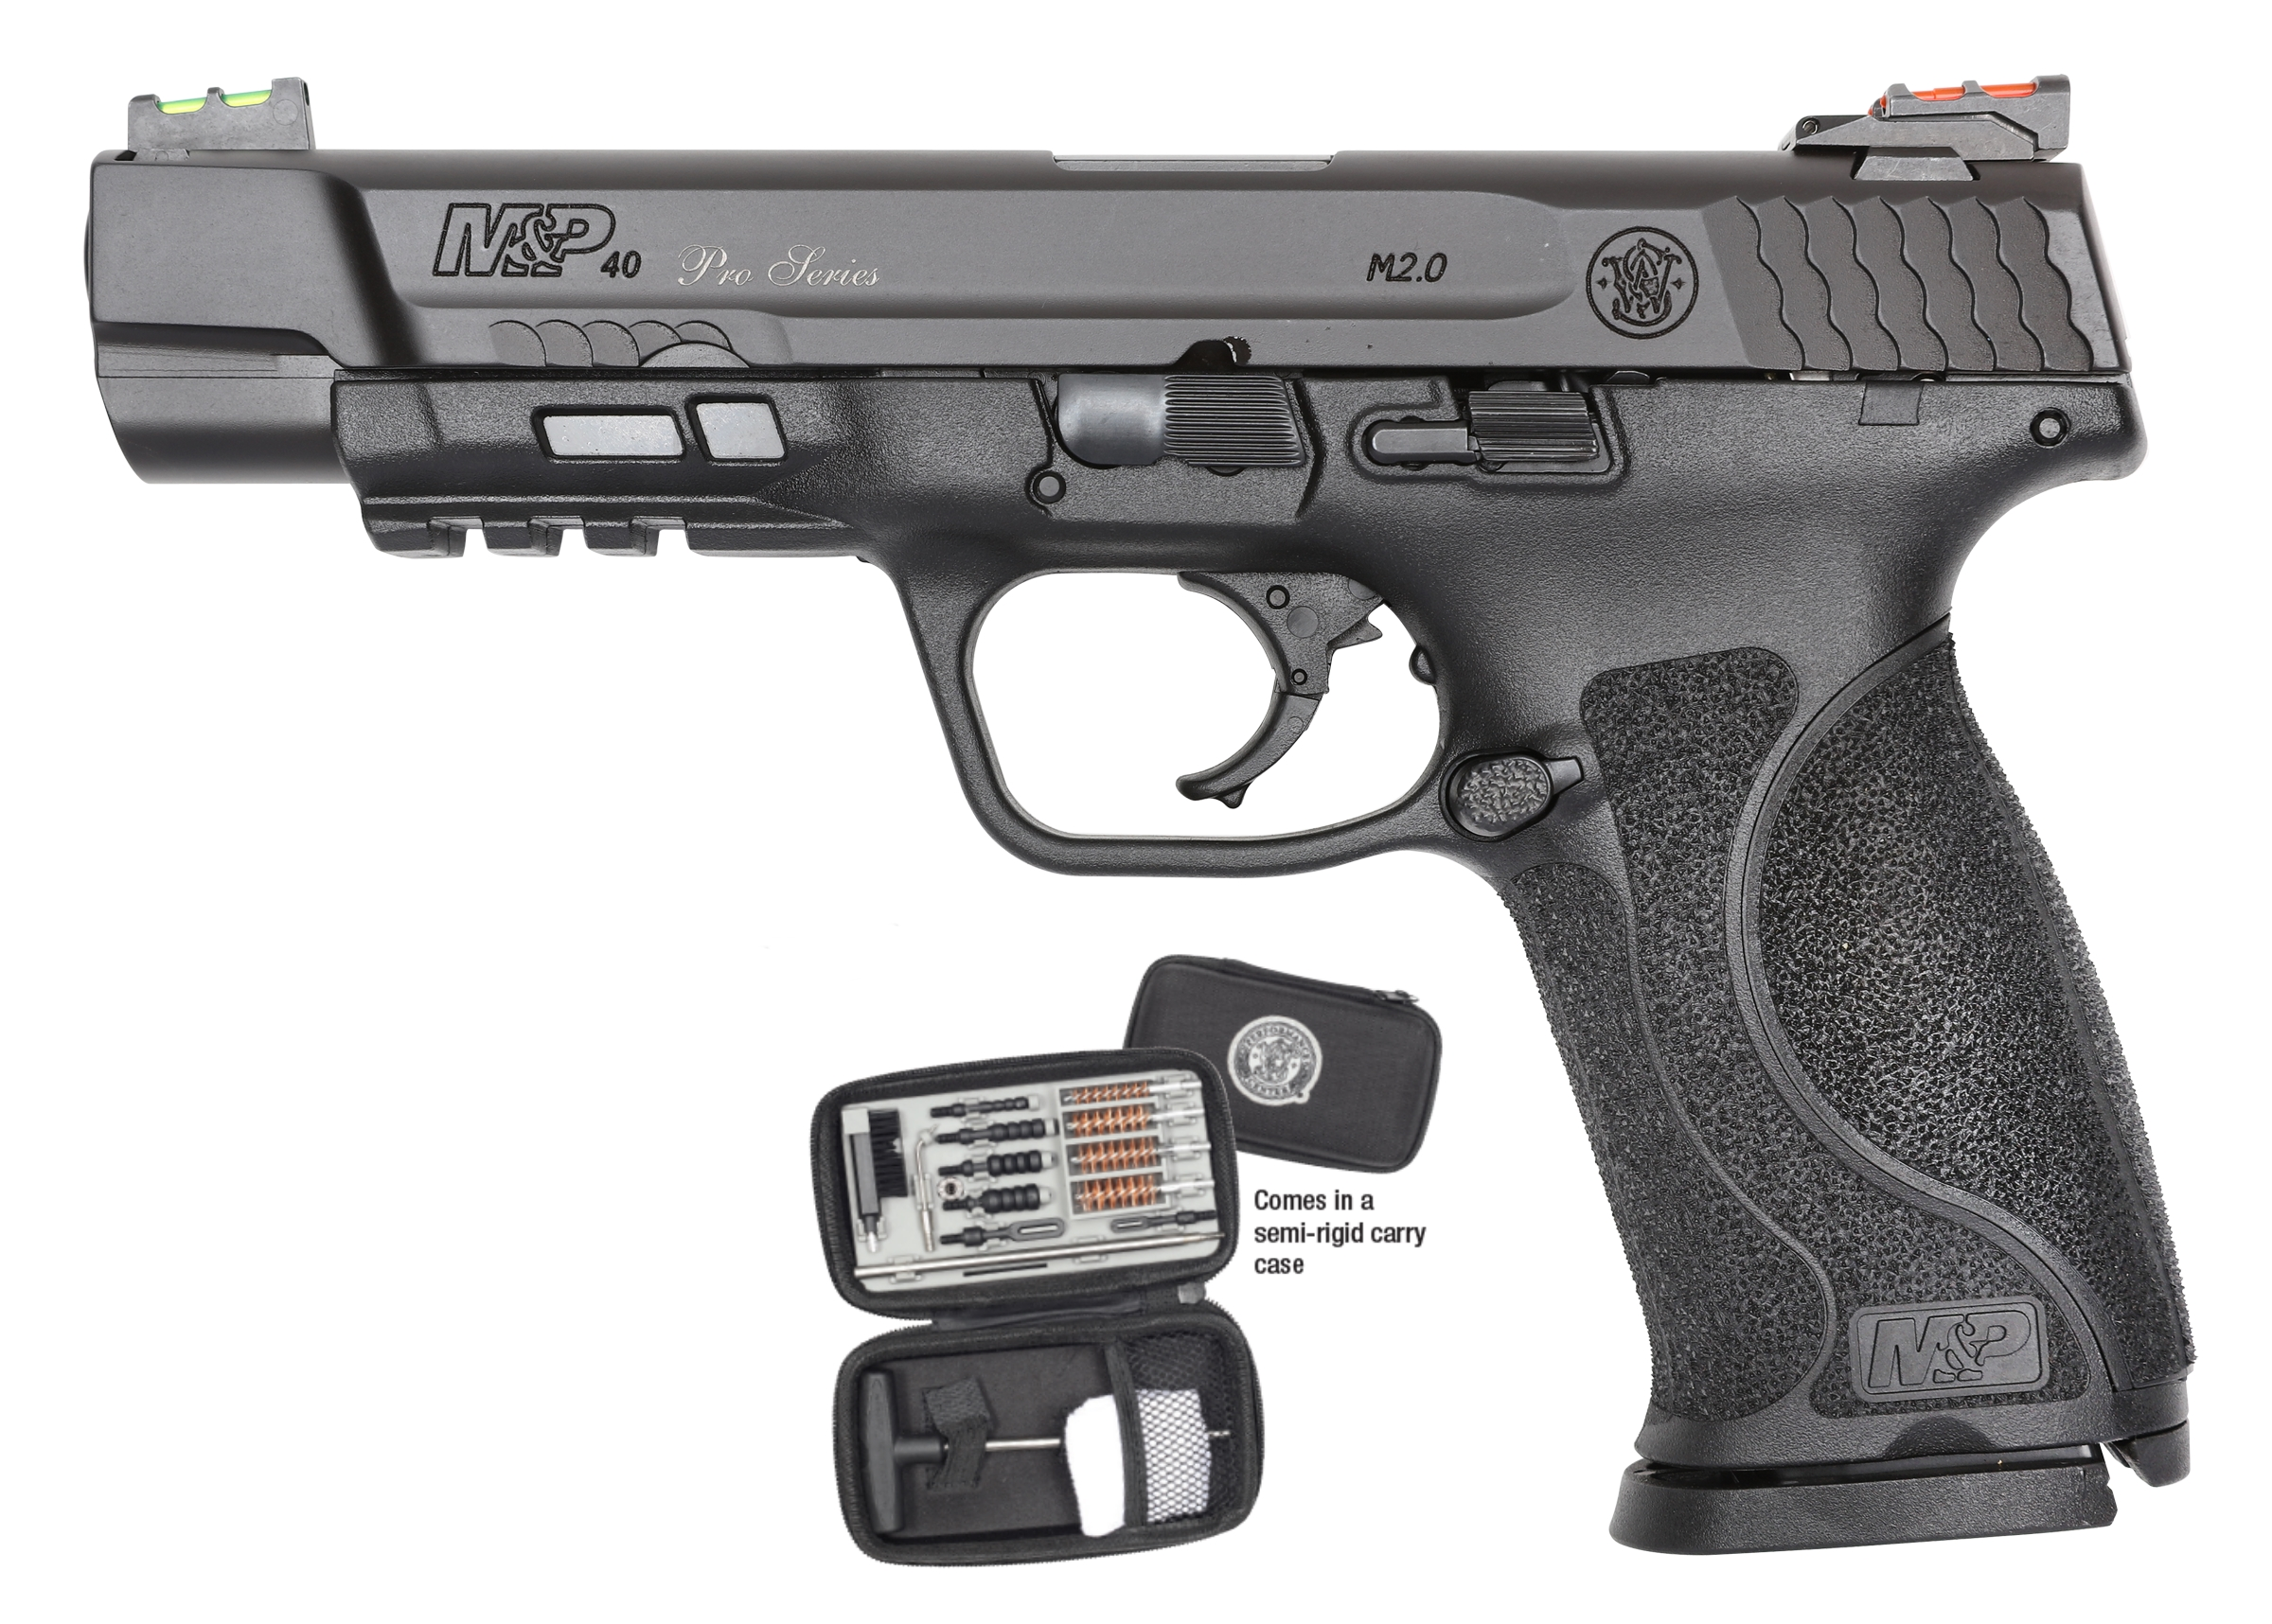 Smith and Wesson M&P40 M2.0 PRO SERIES 40 S&W